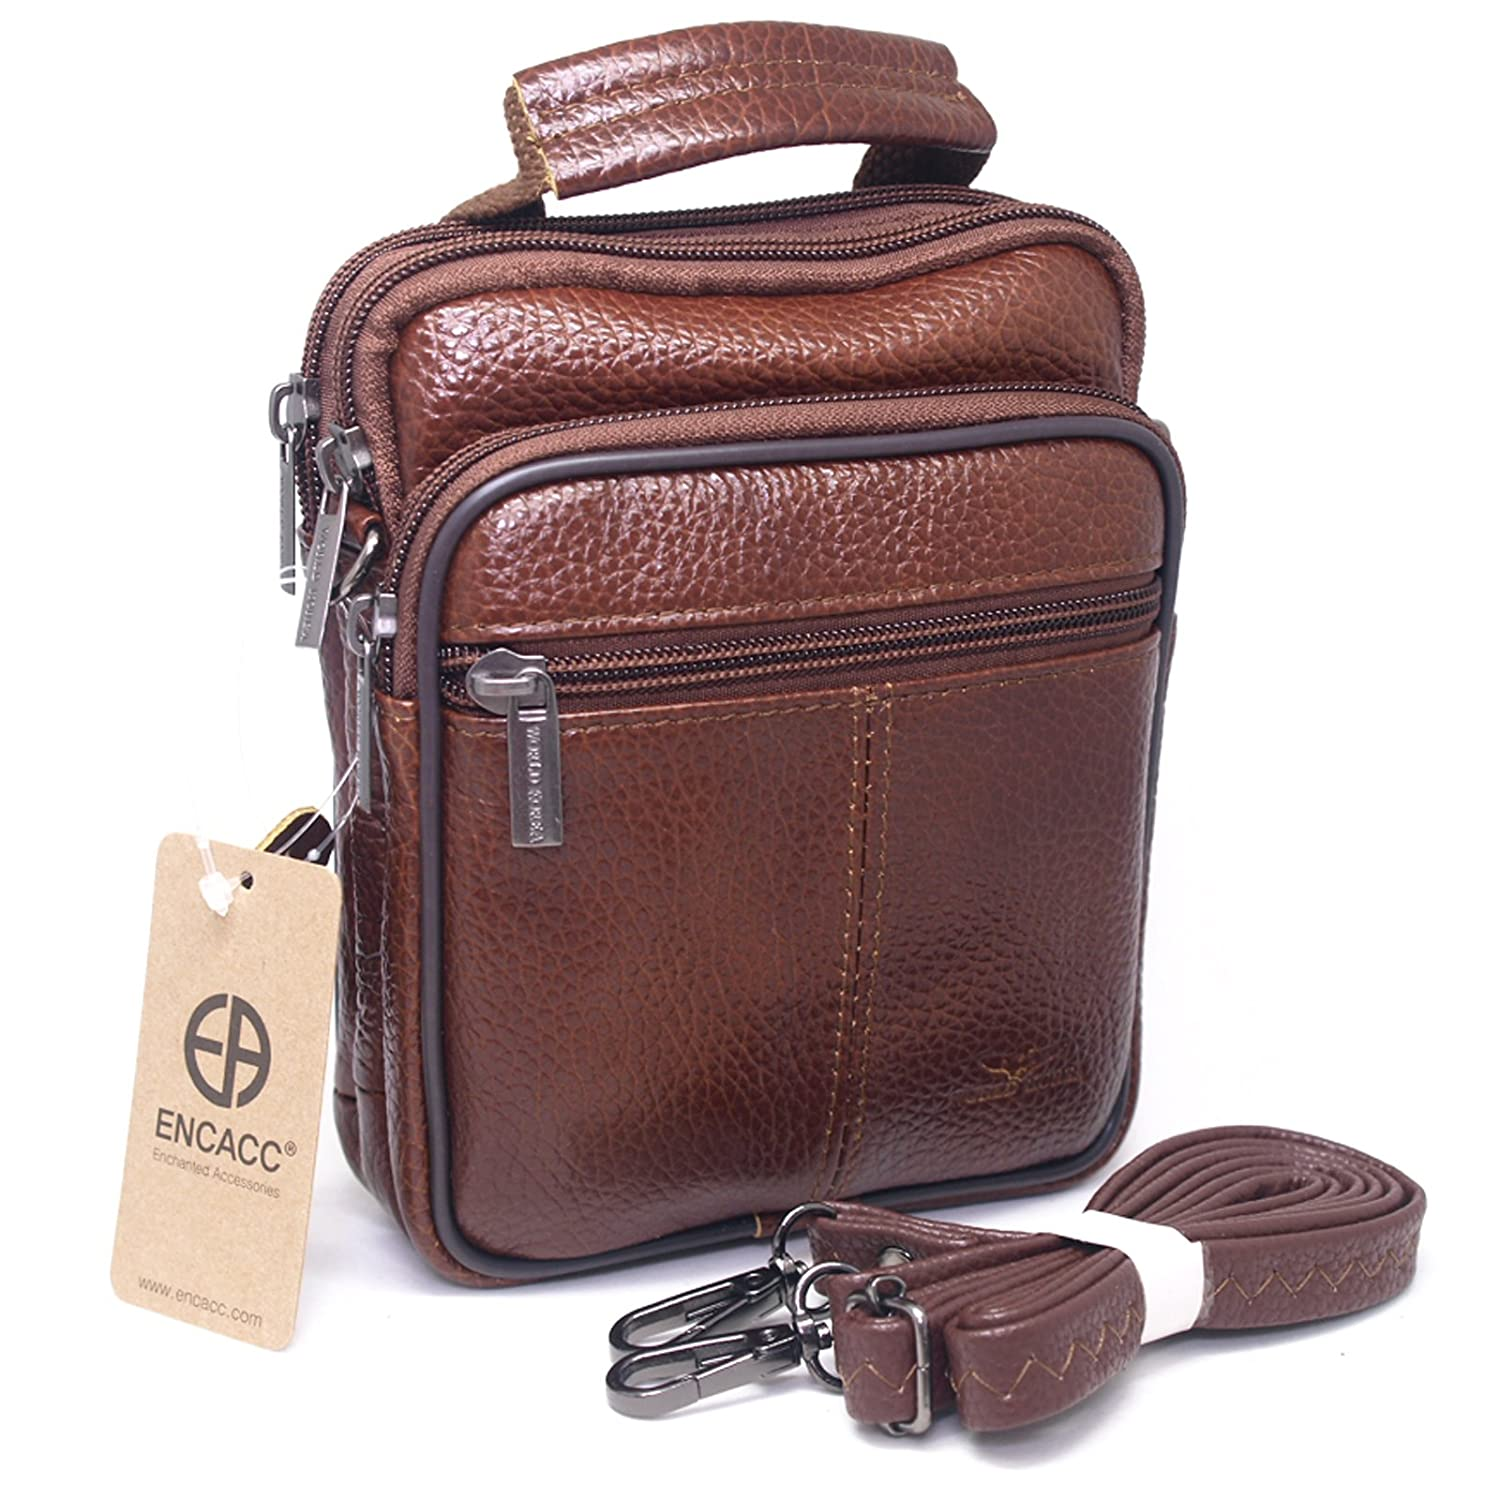 1533557fdfe3 Amazon.com  Mens Waist Pack Small Messenger Bags Tactical Mobile Phone Pouch  Leather Travel Bags Cases Holsters (Brown WK32EN)  Cell Phones   Accessories